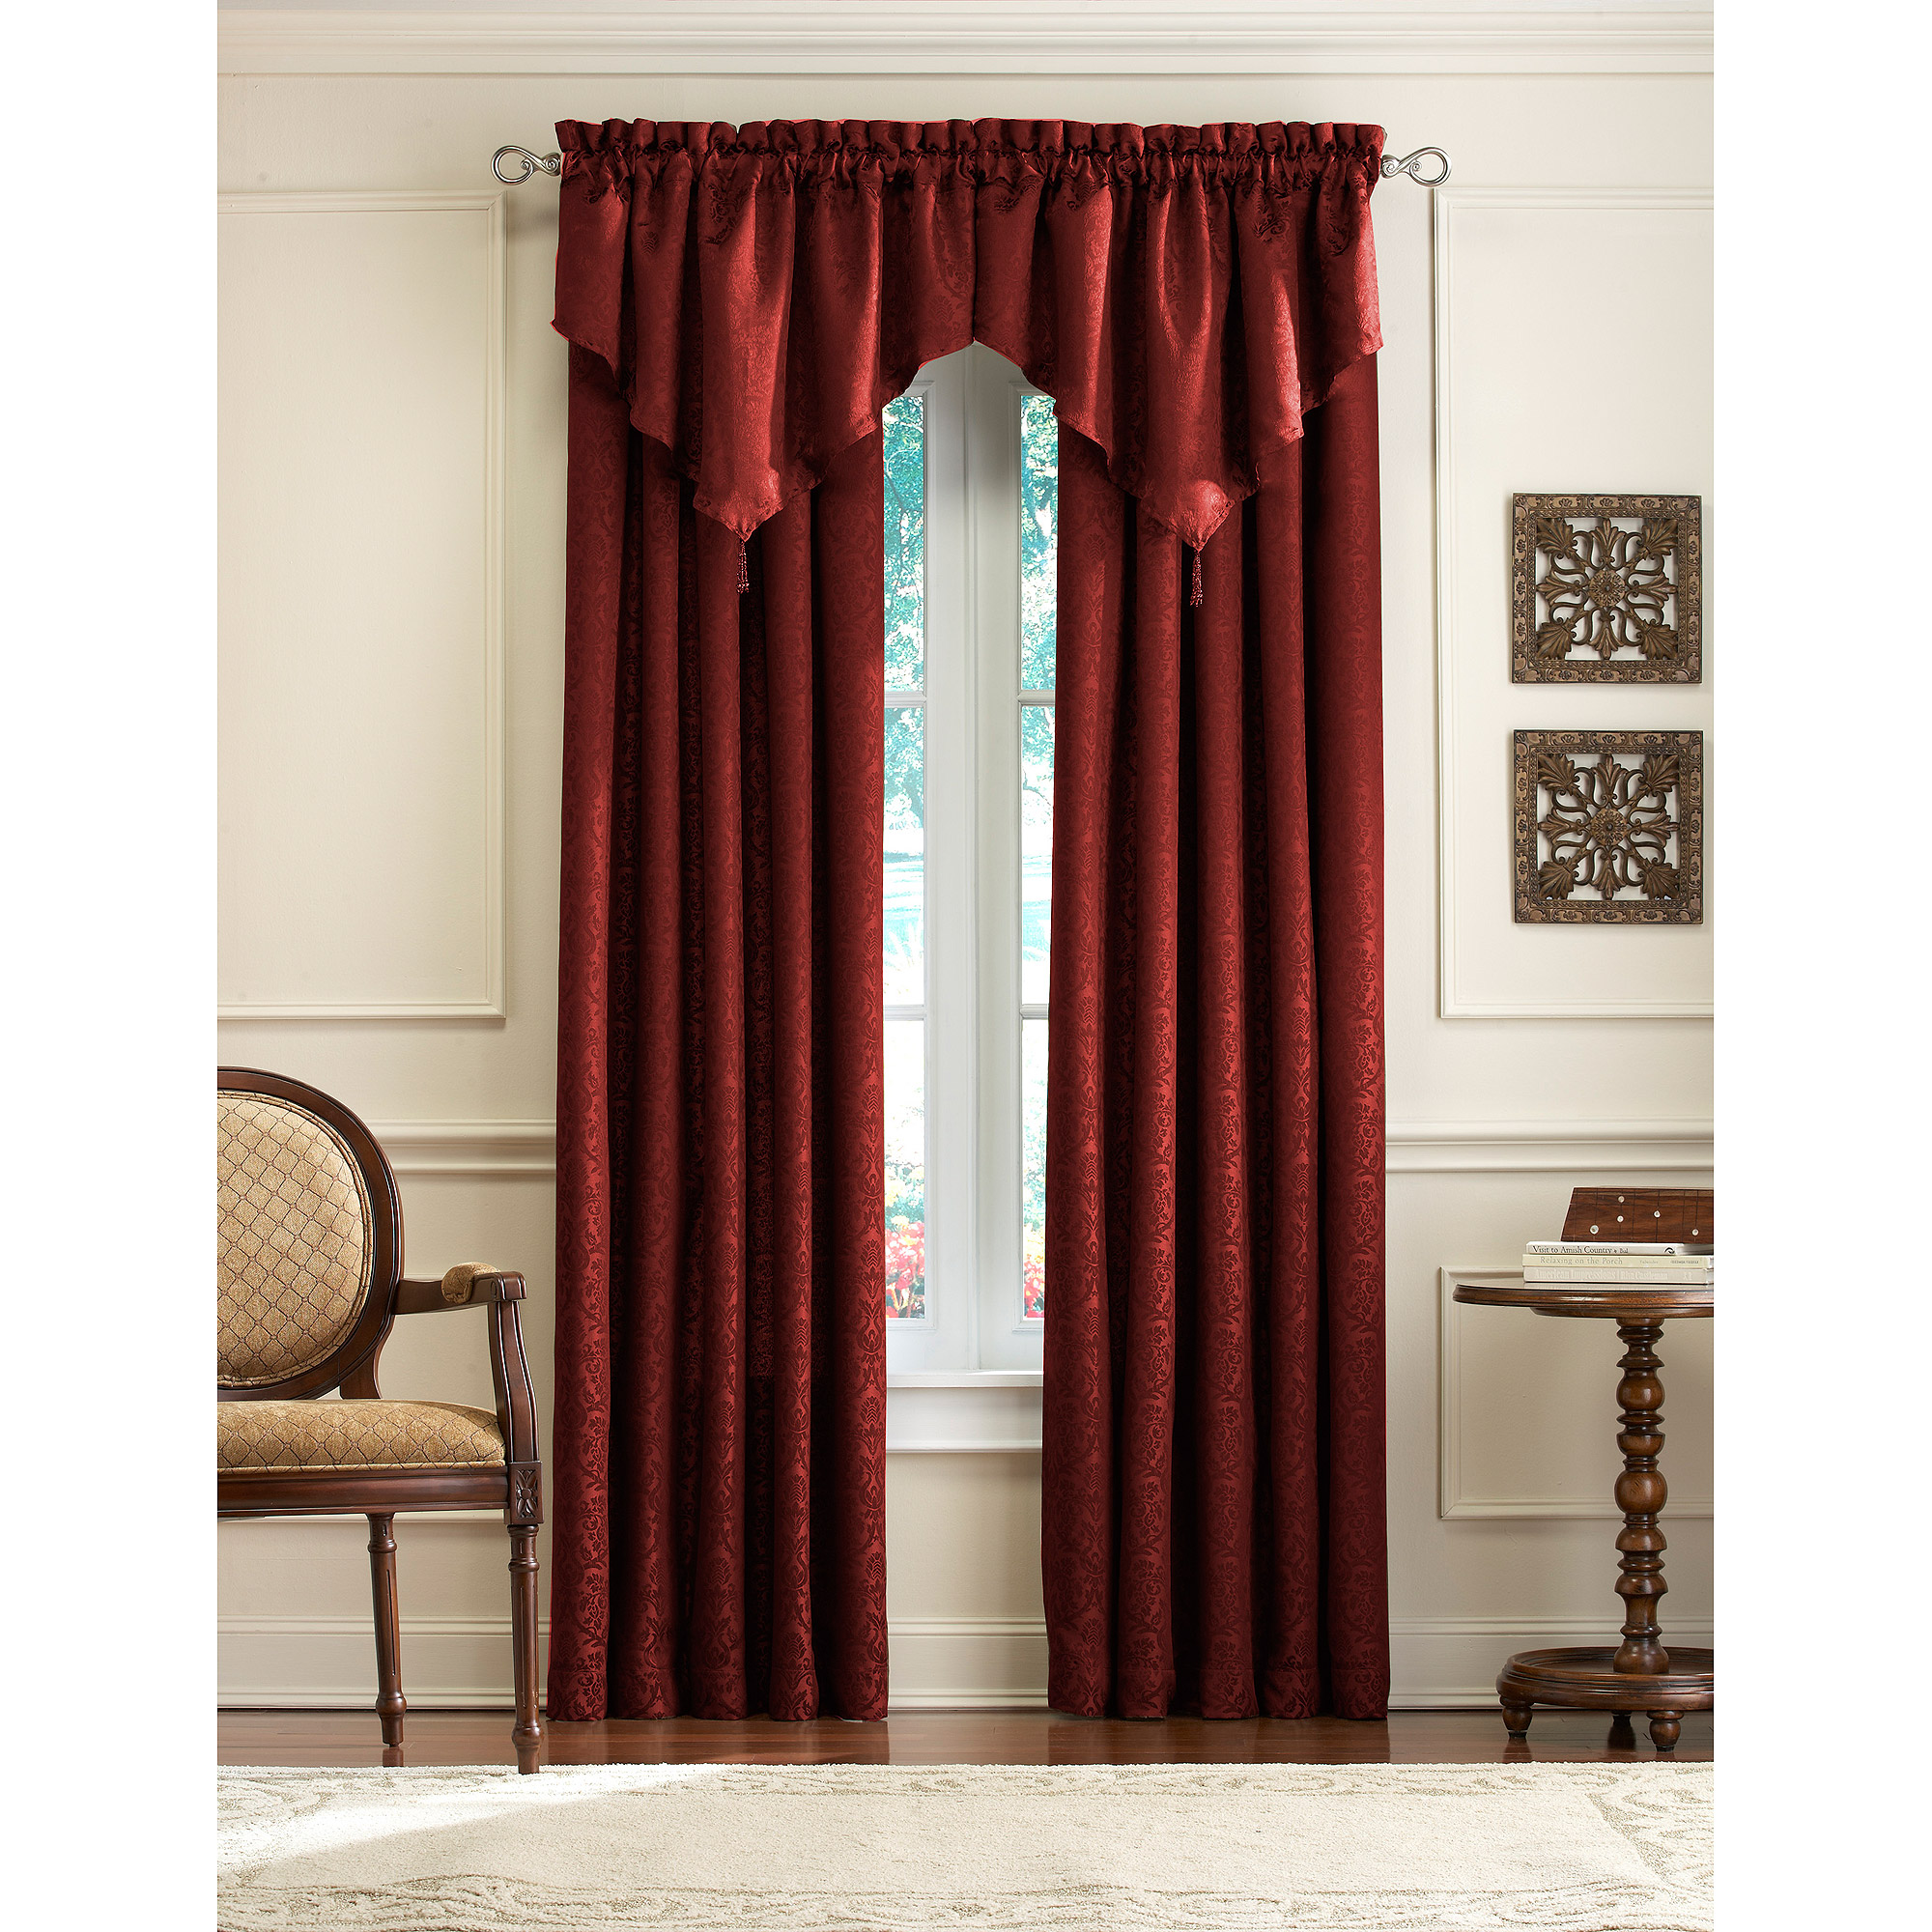 CHF & You Mercato Curtain Panel / Valance